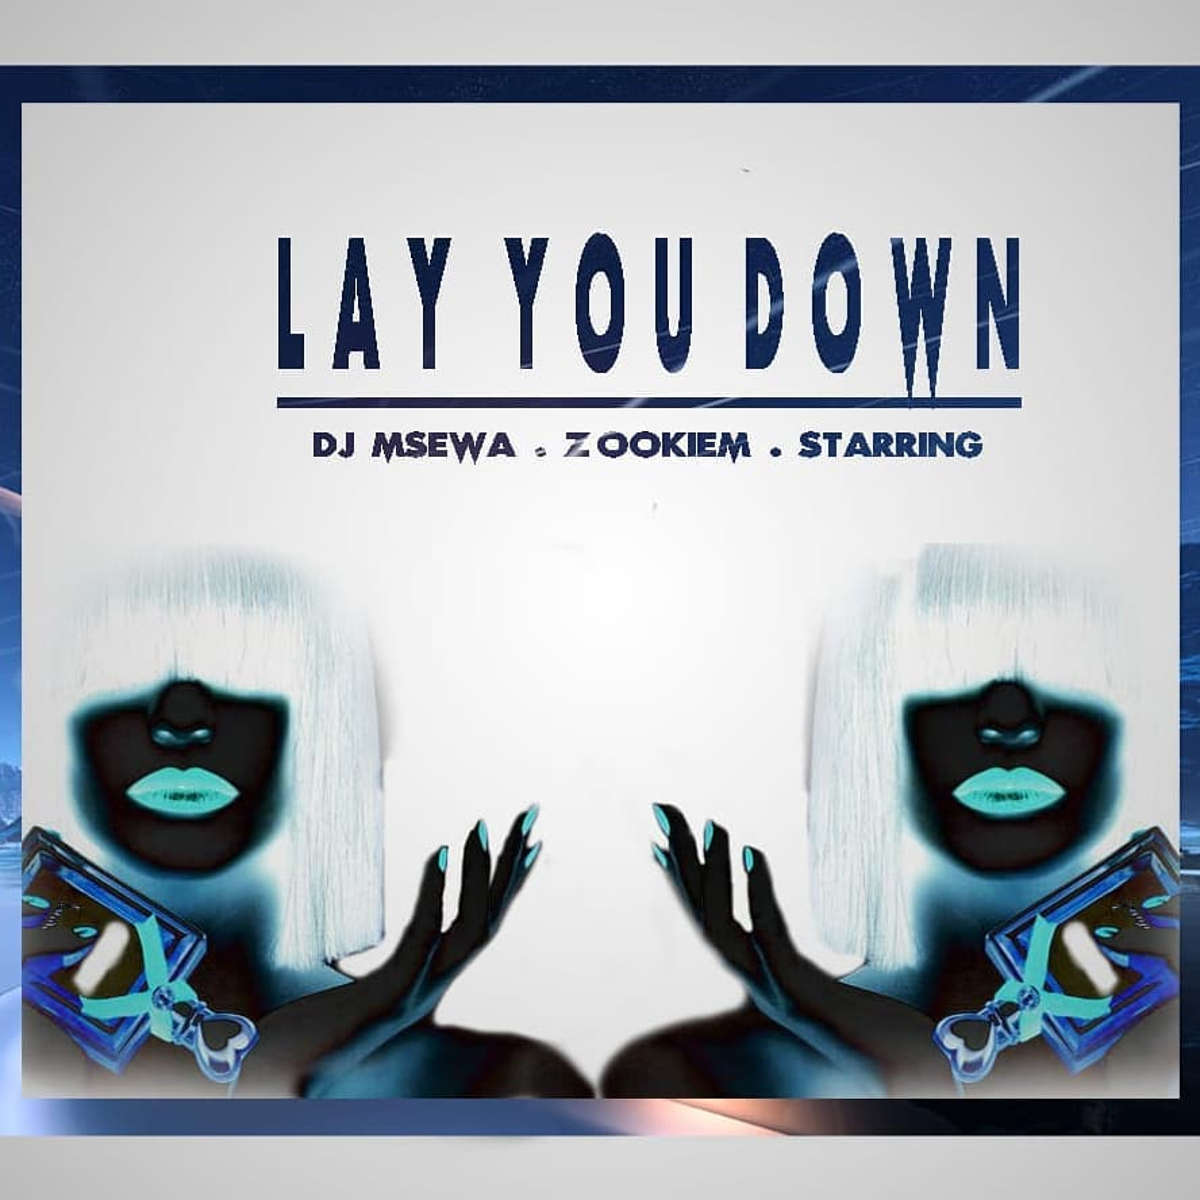 Dj Msewa, ZookieM & Starring – Lay You Down (Original Mix)